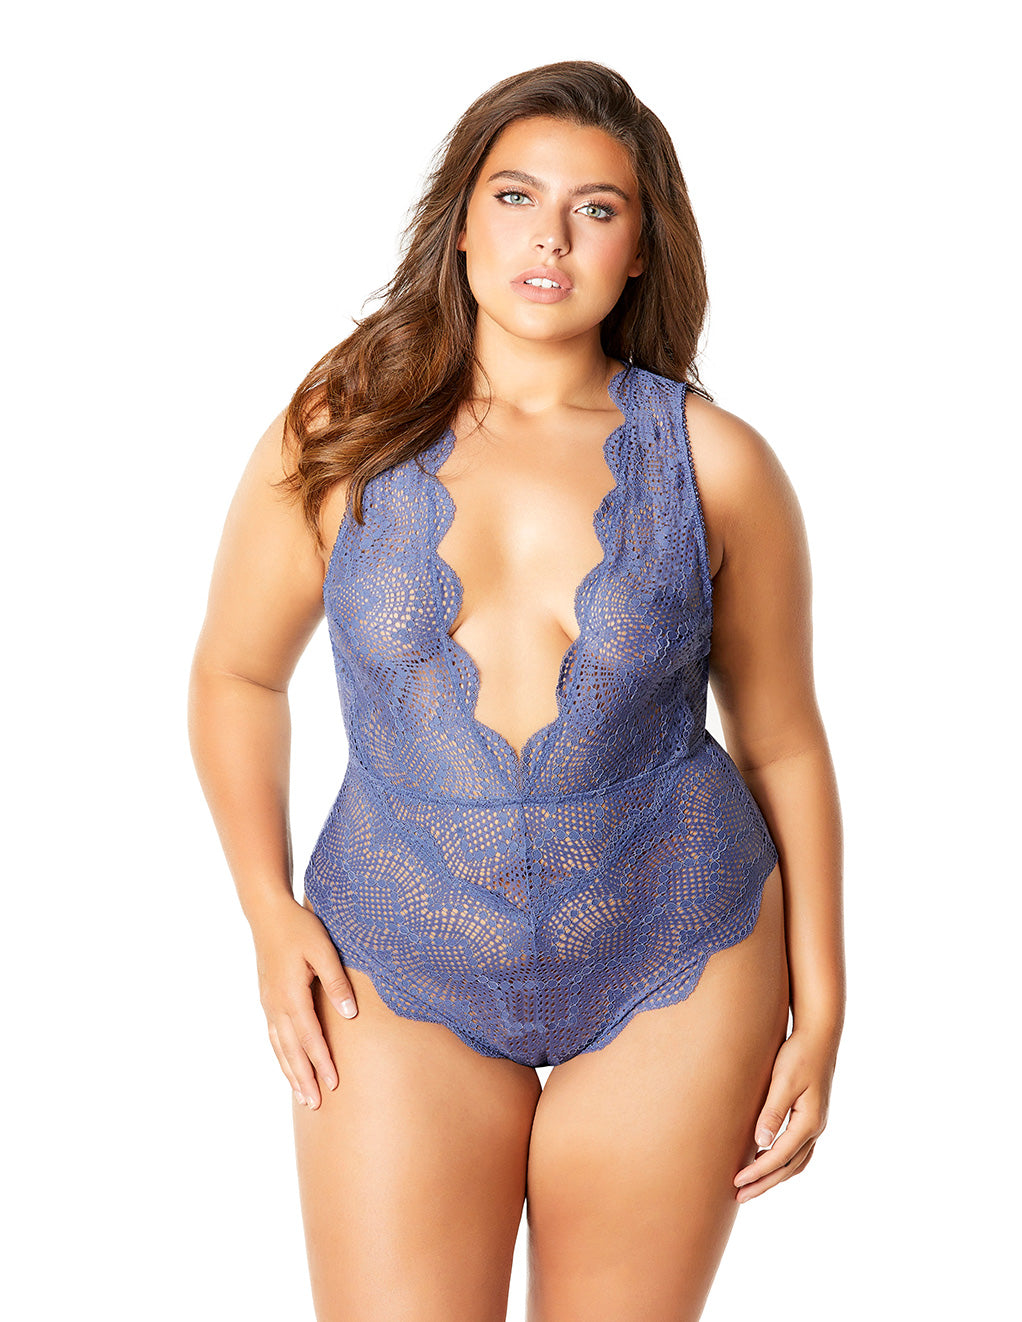 Oh La La Cheri Striped Lace Plunge Teddy Blue Front Plus Size